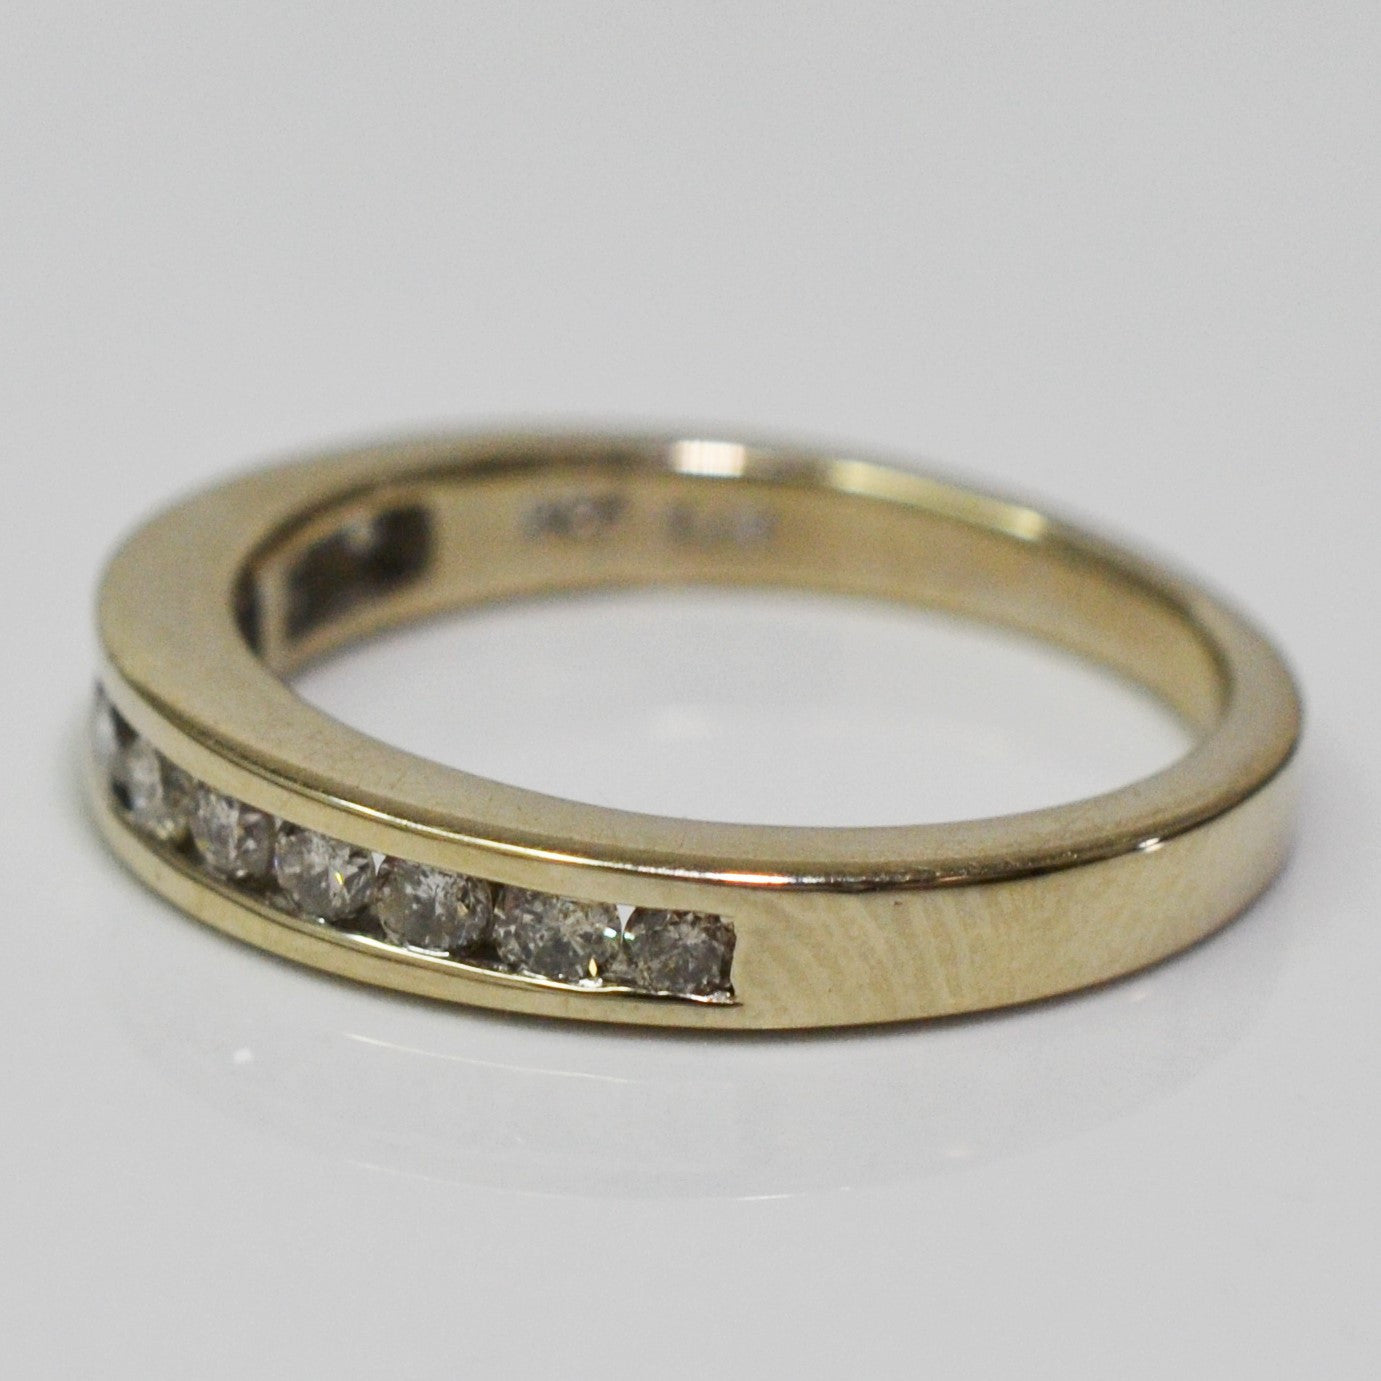 band bands wedding semi half the beaverbrooks platinum eternity rings jewellers jewellery ring context diamond large